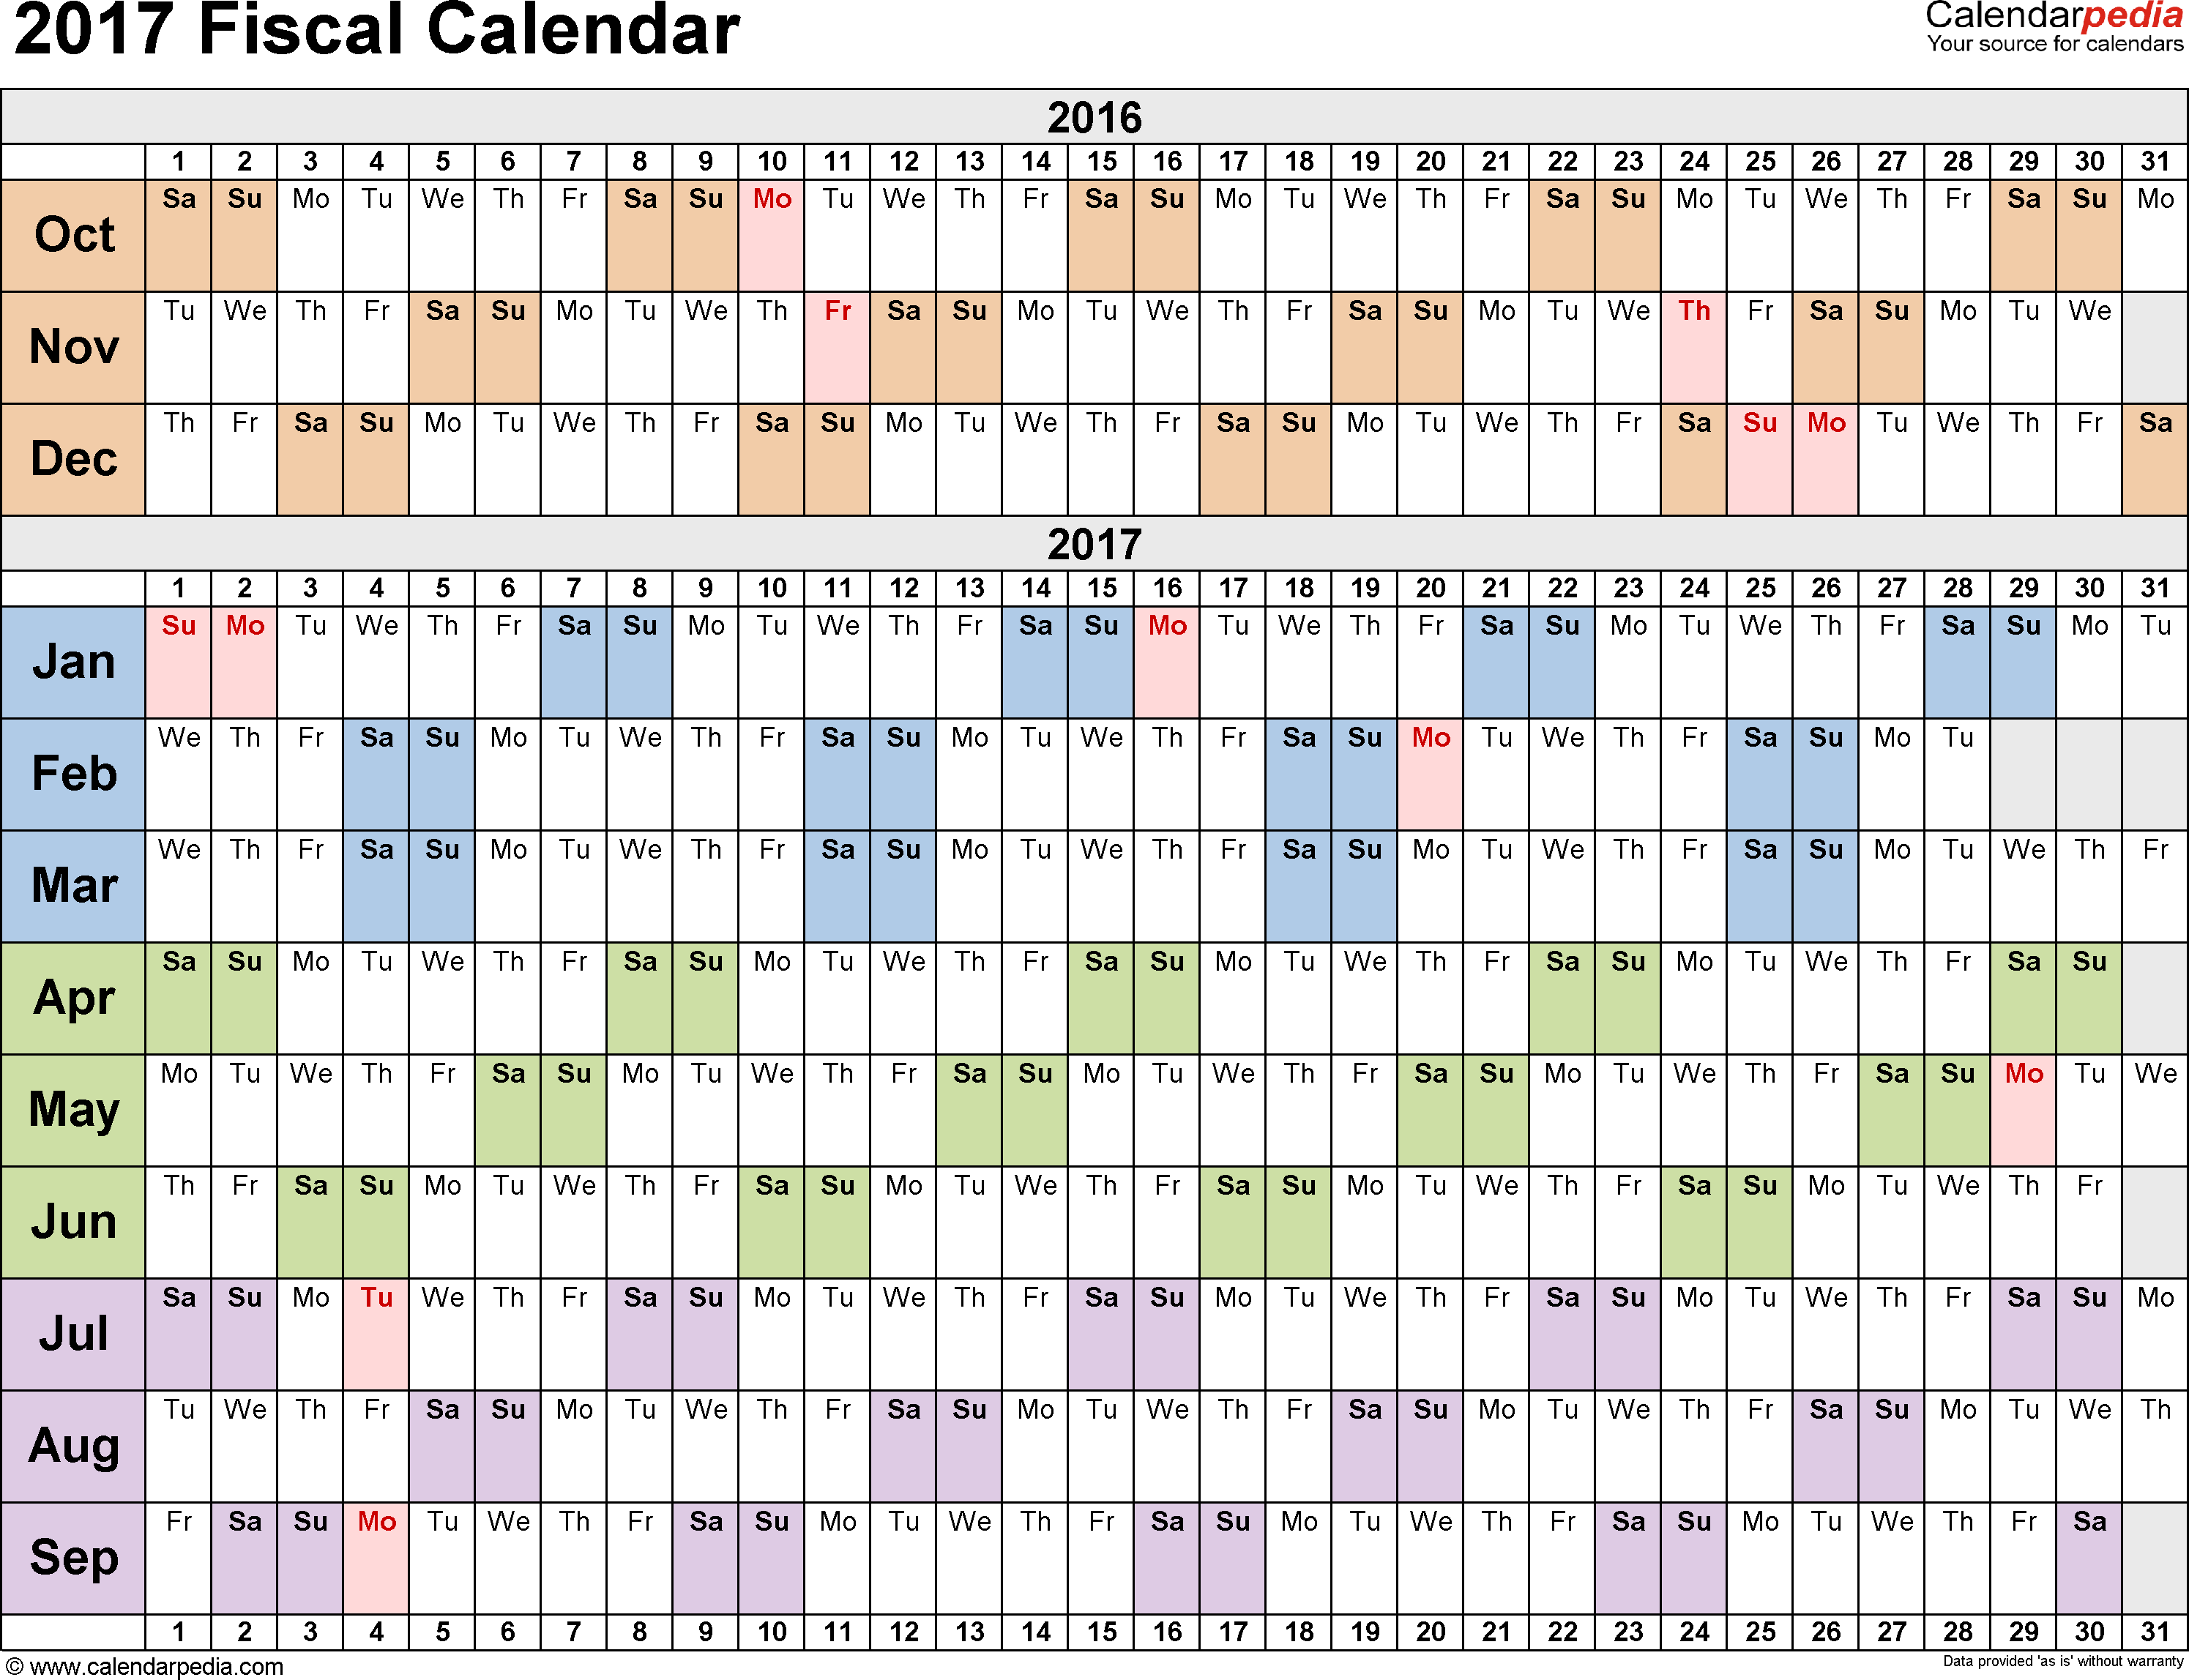 Template 3: Fiscal year calendar 2017 for PDF, landscape orientation, days horizontally (linear), 1 page